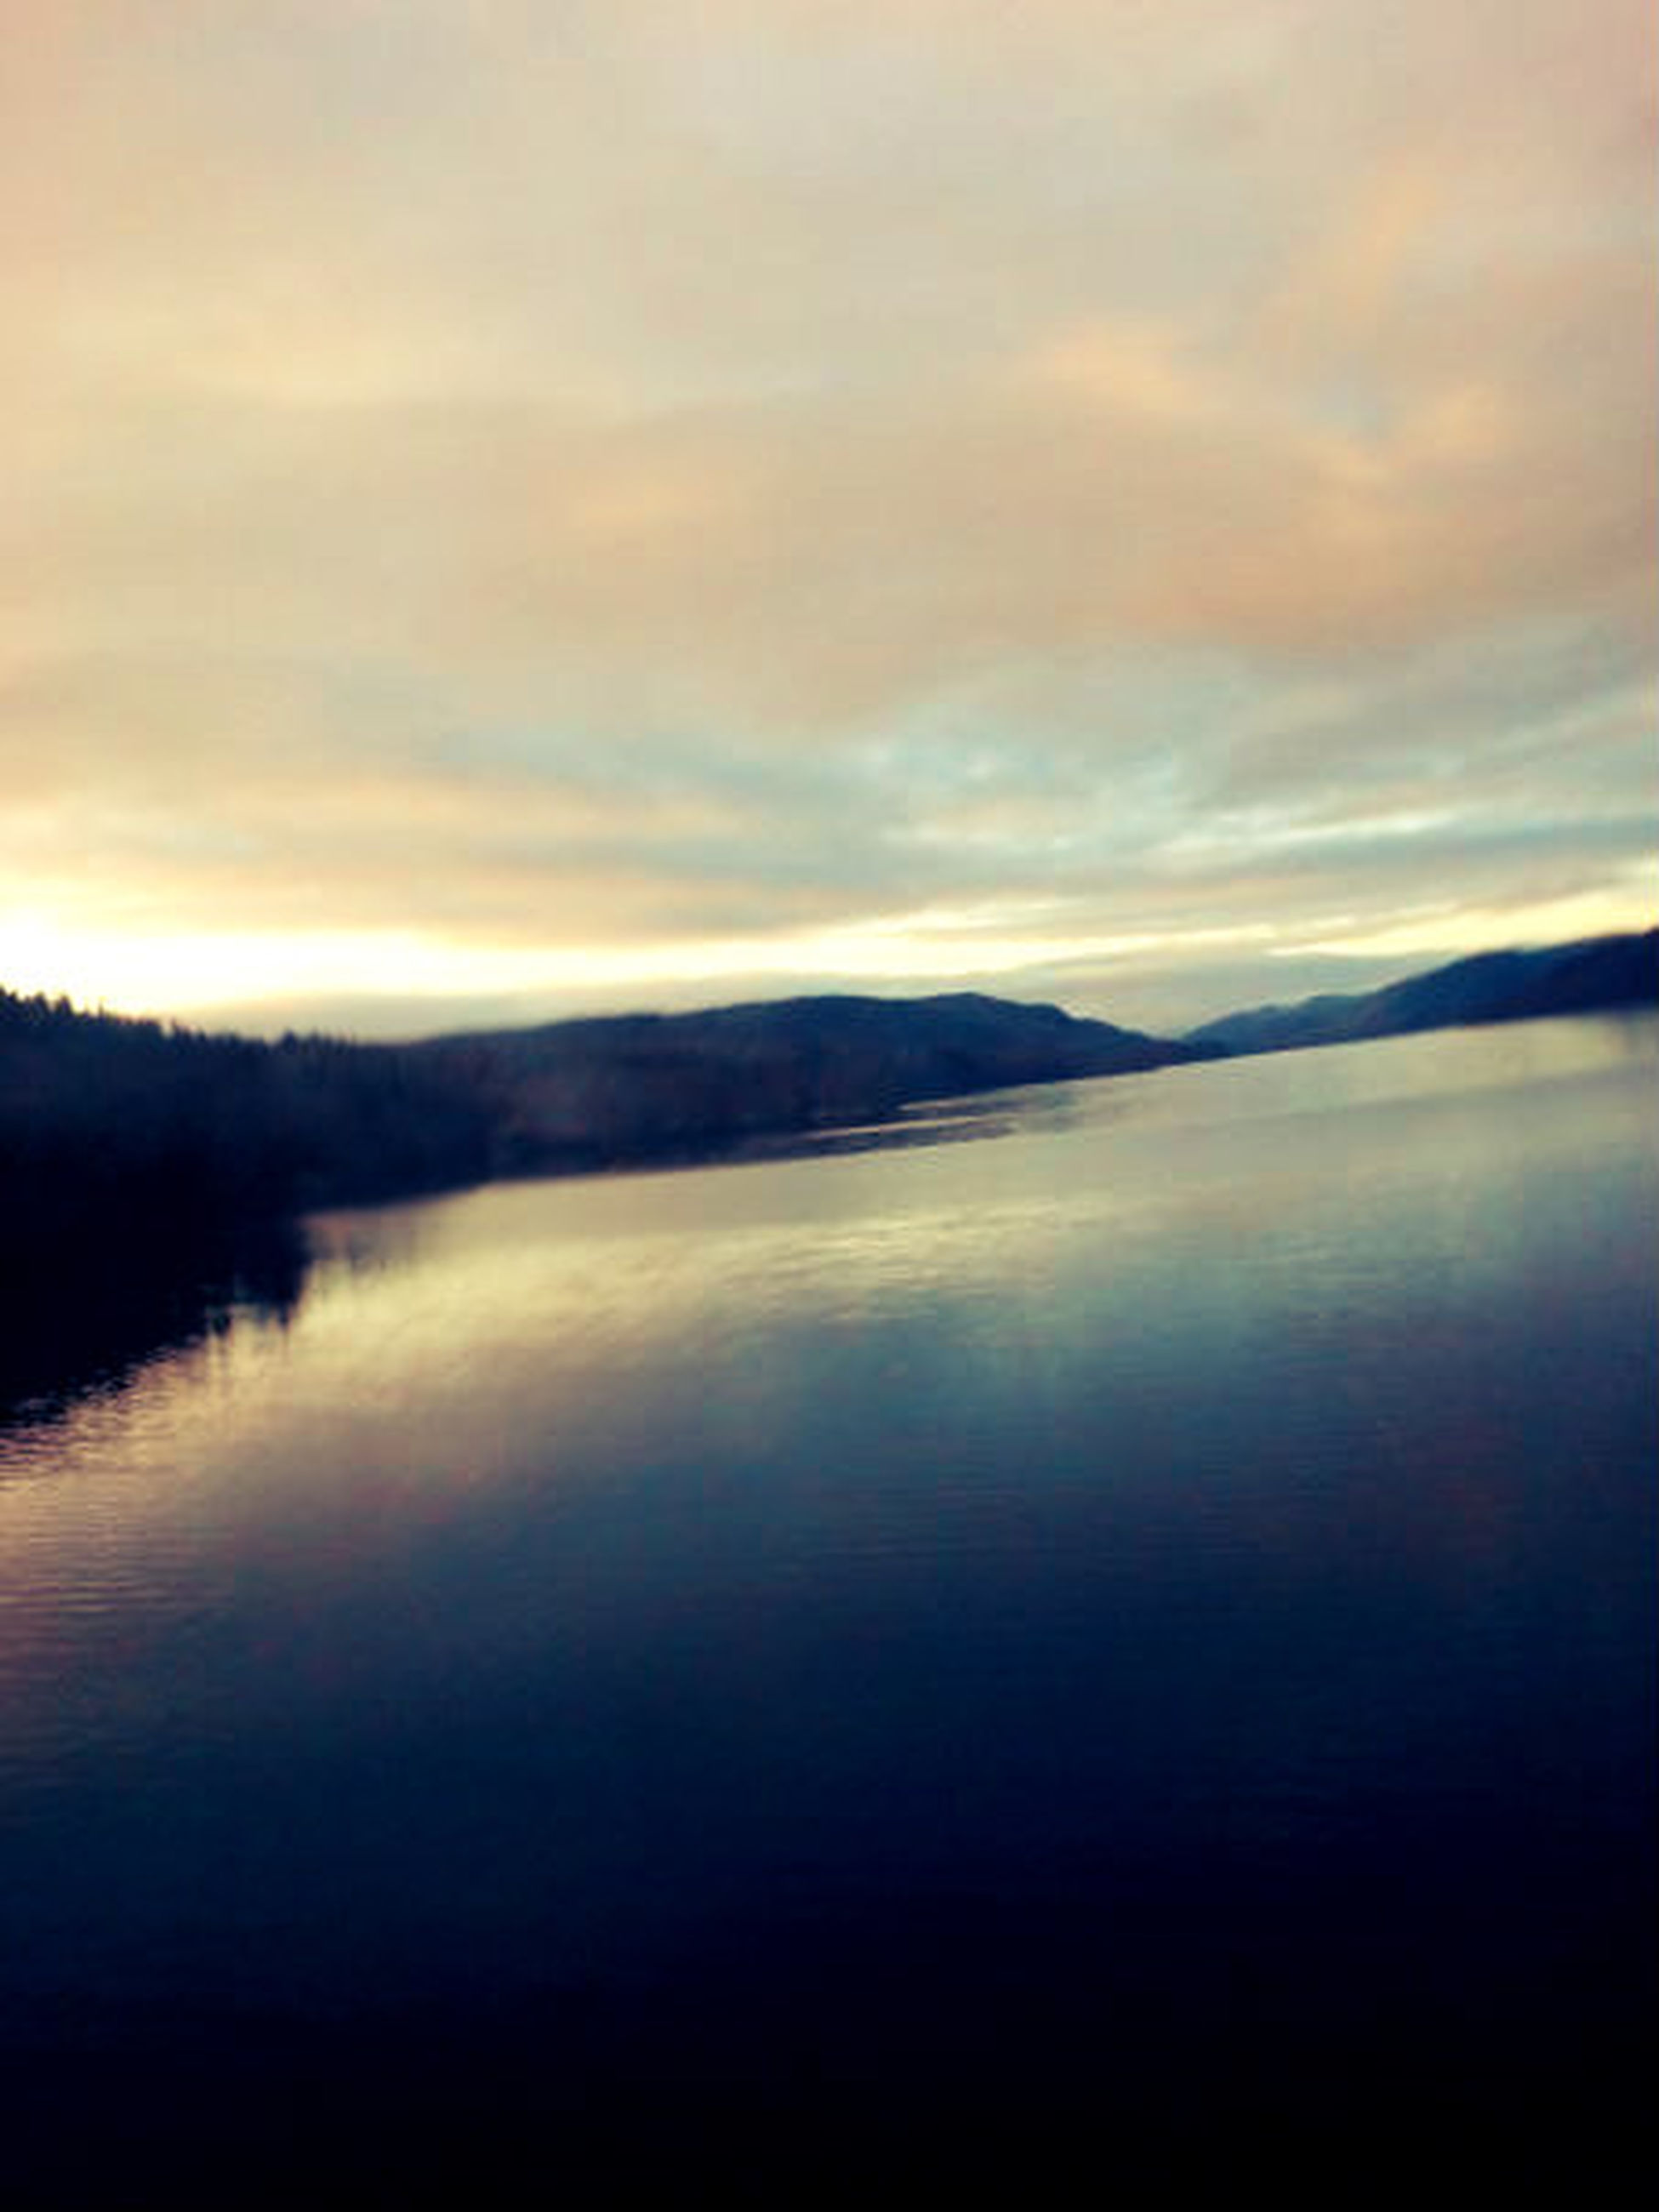 tranquil scene, tranquility, water, scenics, beauty in nature, sky, lake, reflection, sunset, cloud - sky, nature, mountain, waterfront, idyllic, cloud, calm, silhouette, cloudy, dusk, non-urban scene